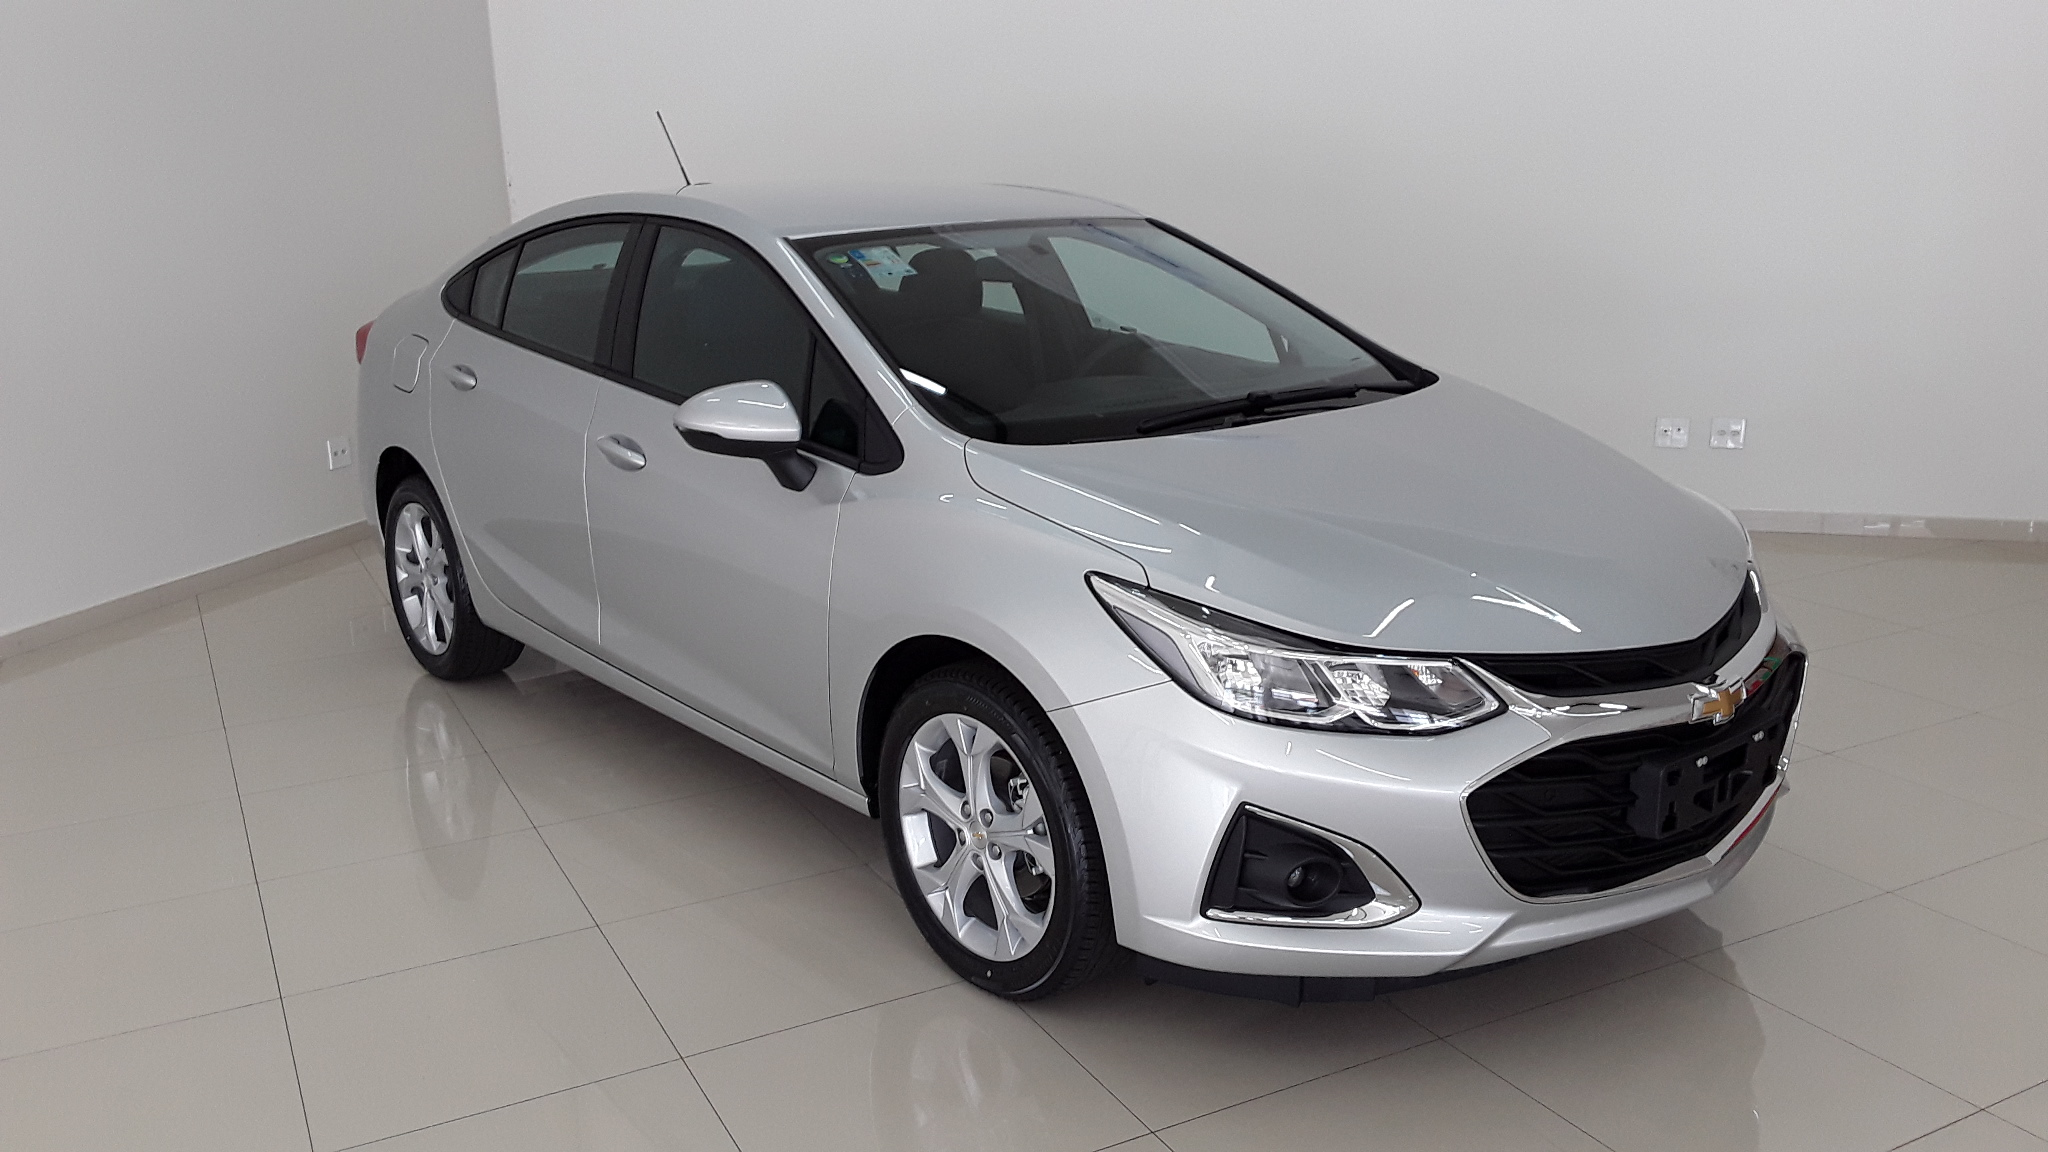 CHEVROLET CRUZE LT 1.4 TURBO 2020